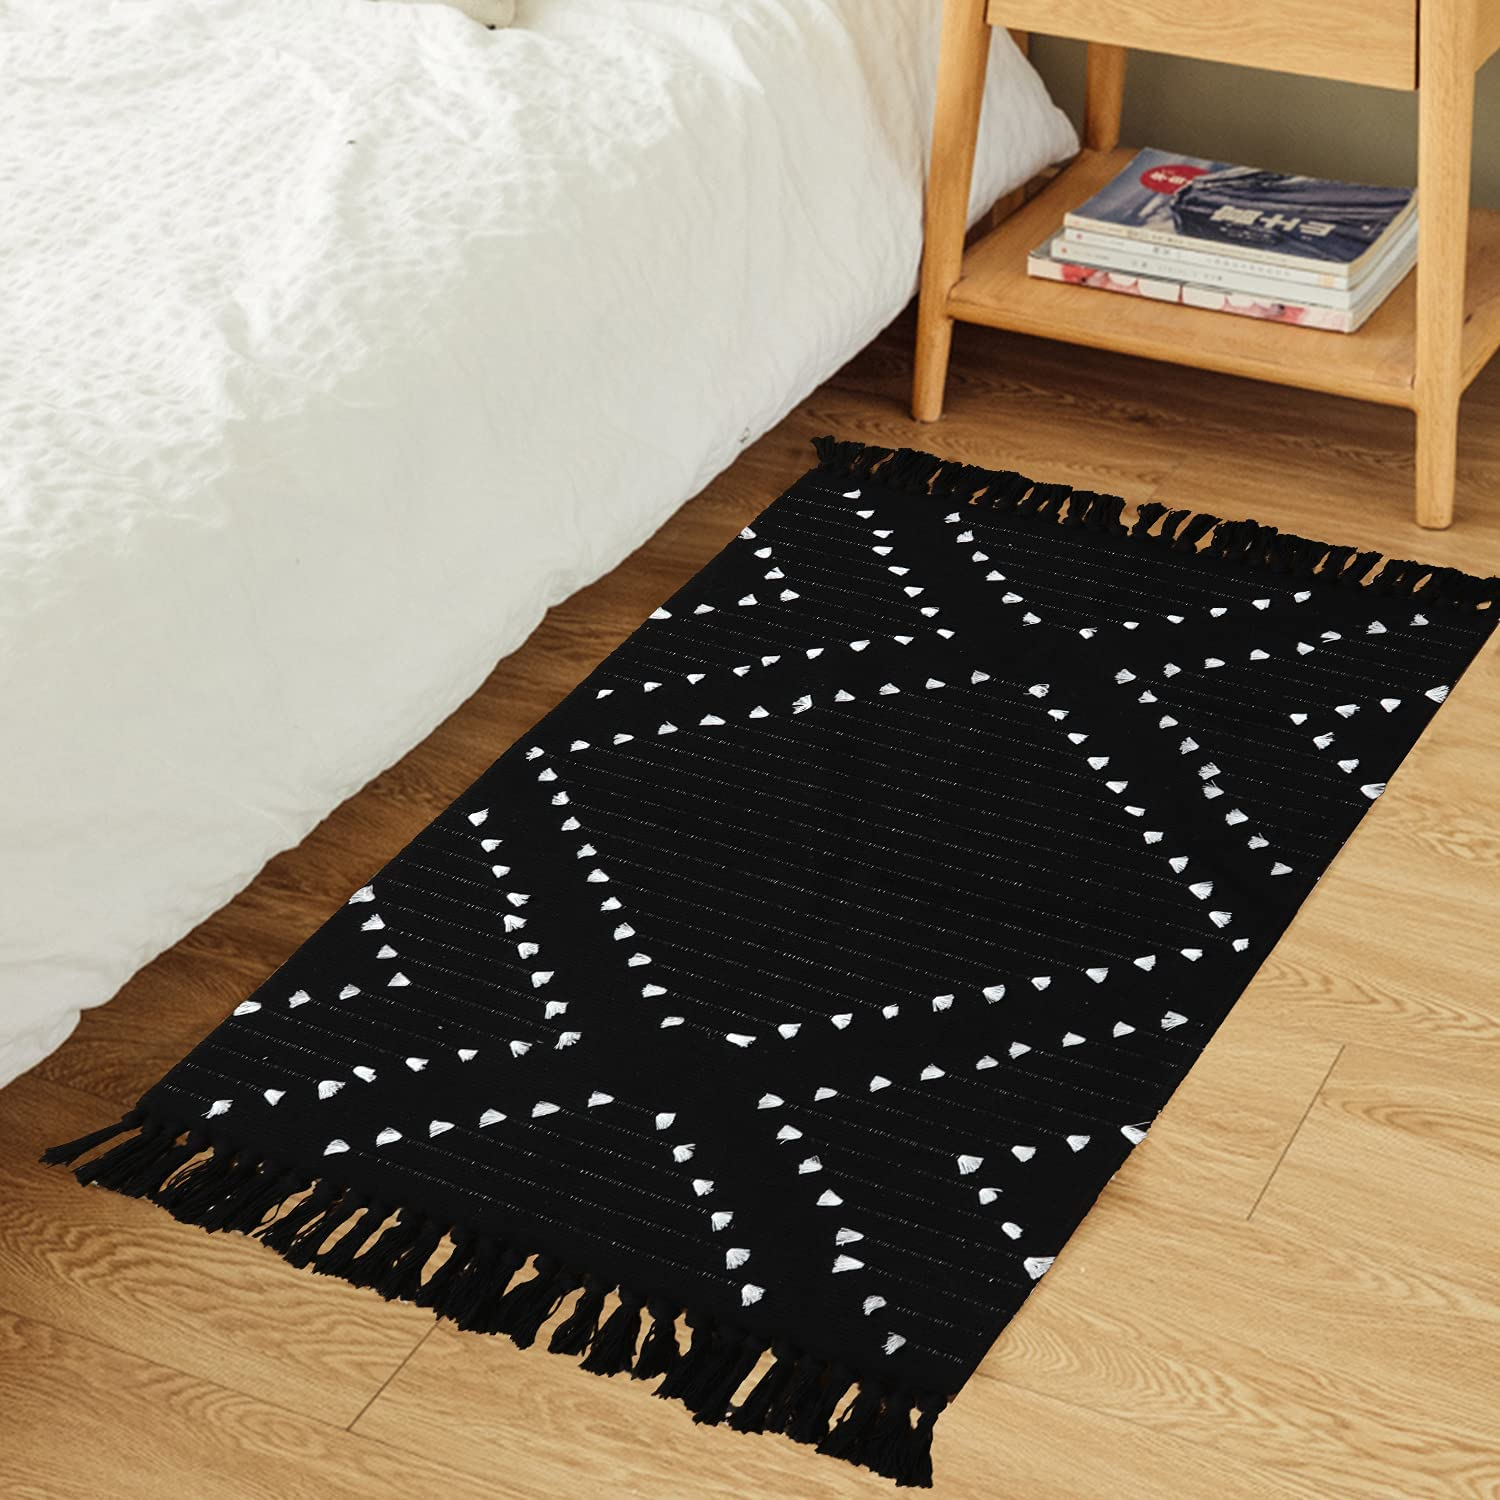 HAOCOO Boho Bathroom Rug 20' X 20' , Cotton Woven Washable Small Area Rugs  with Tassels,Black and White Kitchen Rug Moroccan Tribal Throw Carpet Bath  ...